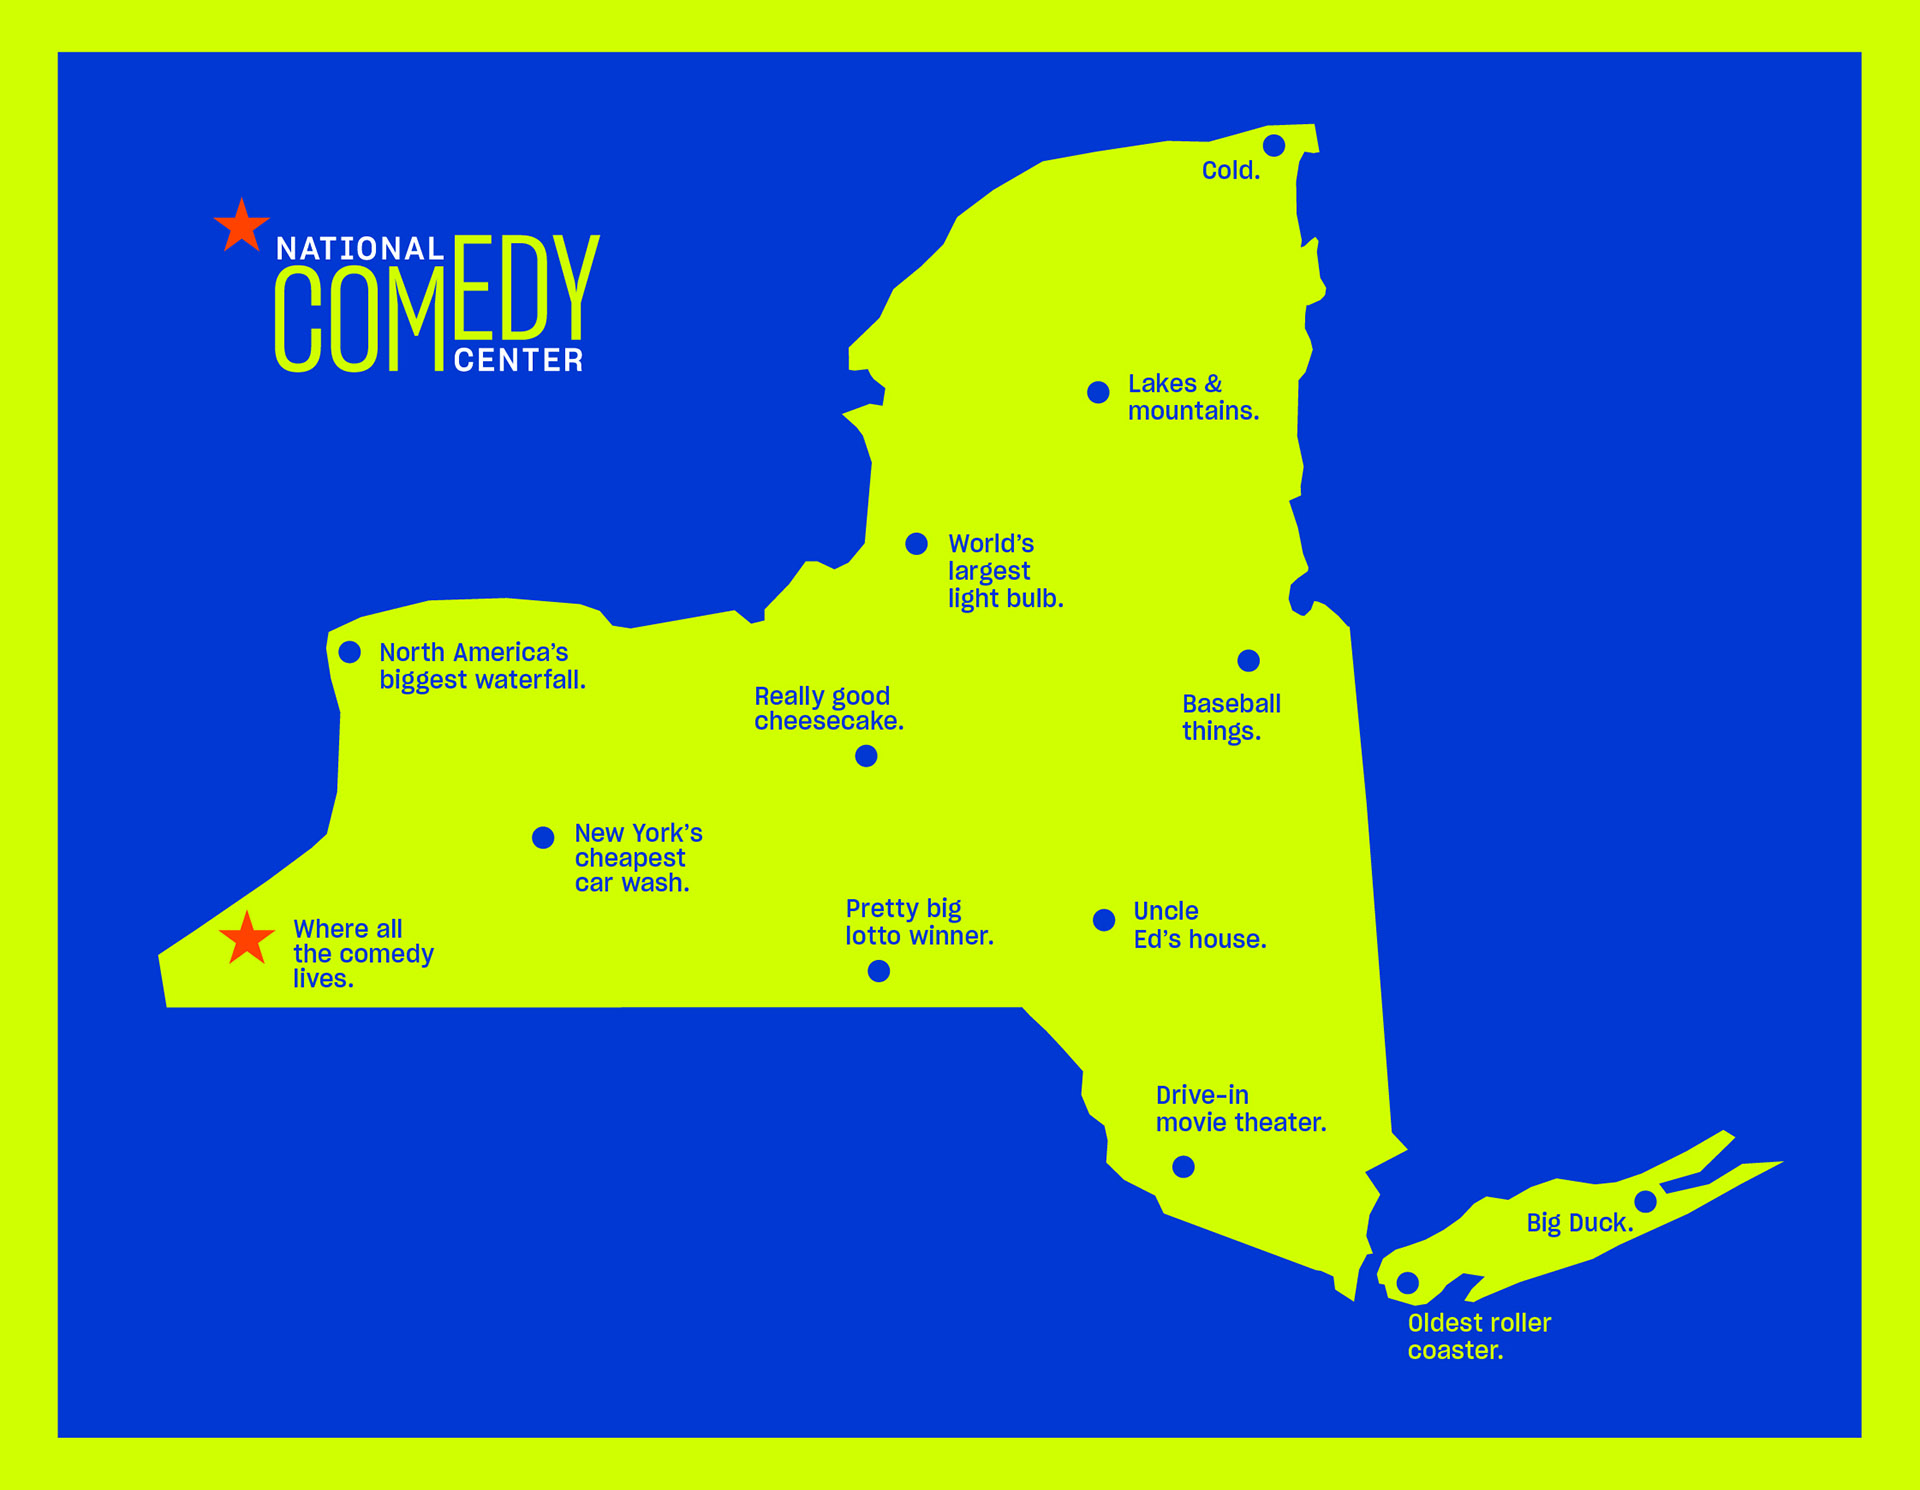 National Comedy Center campaign poster